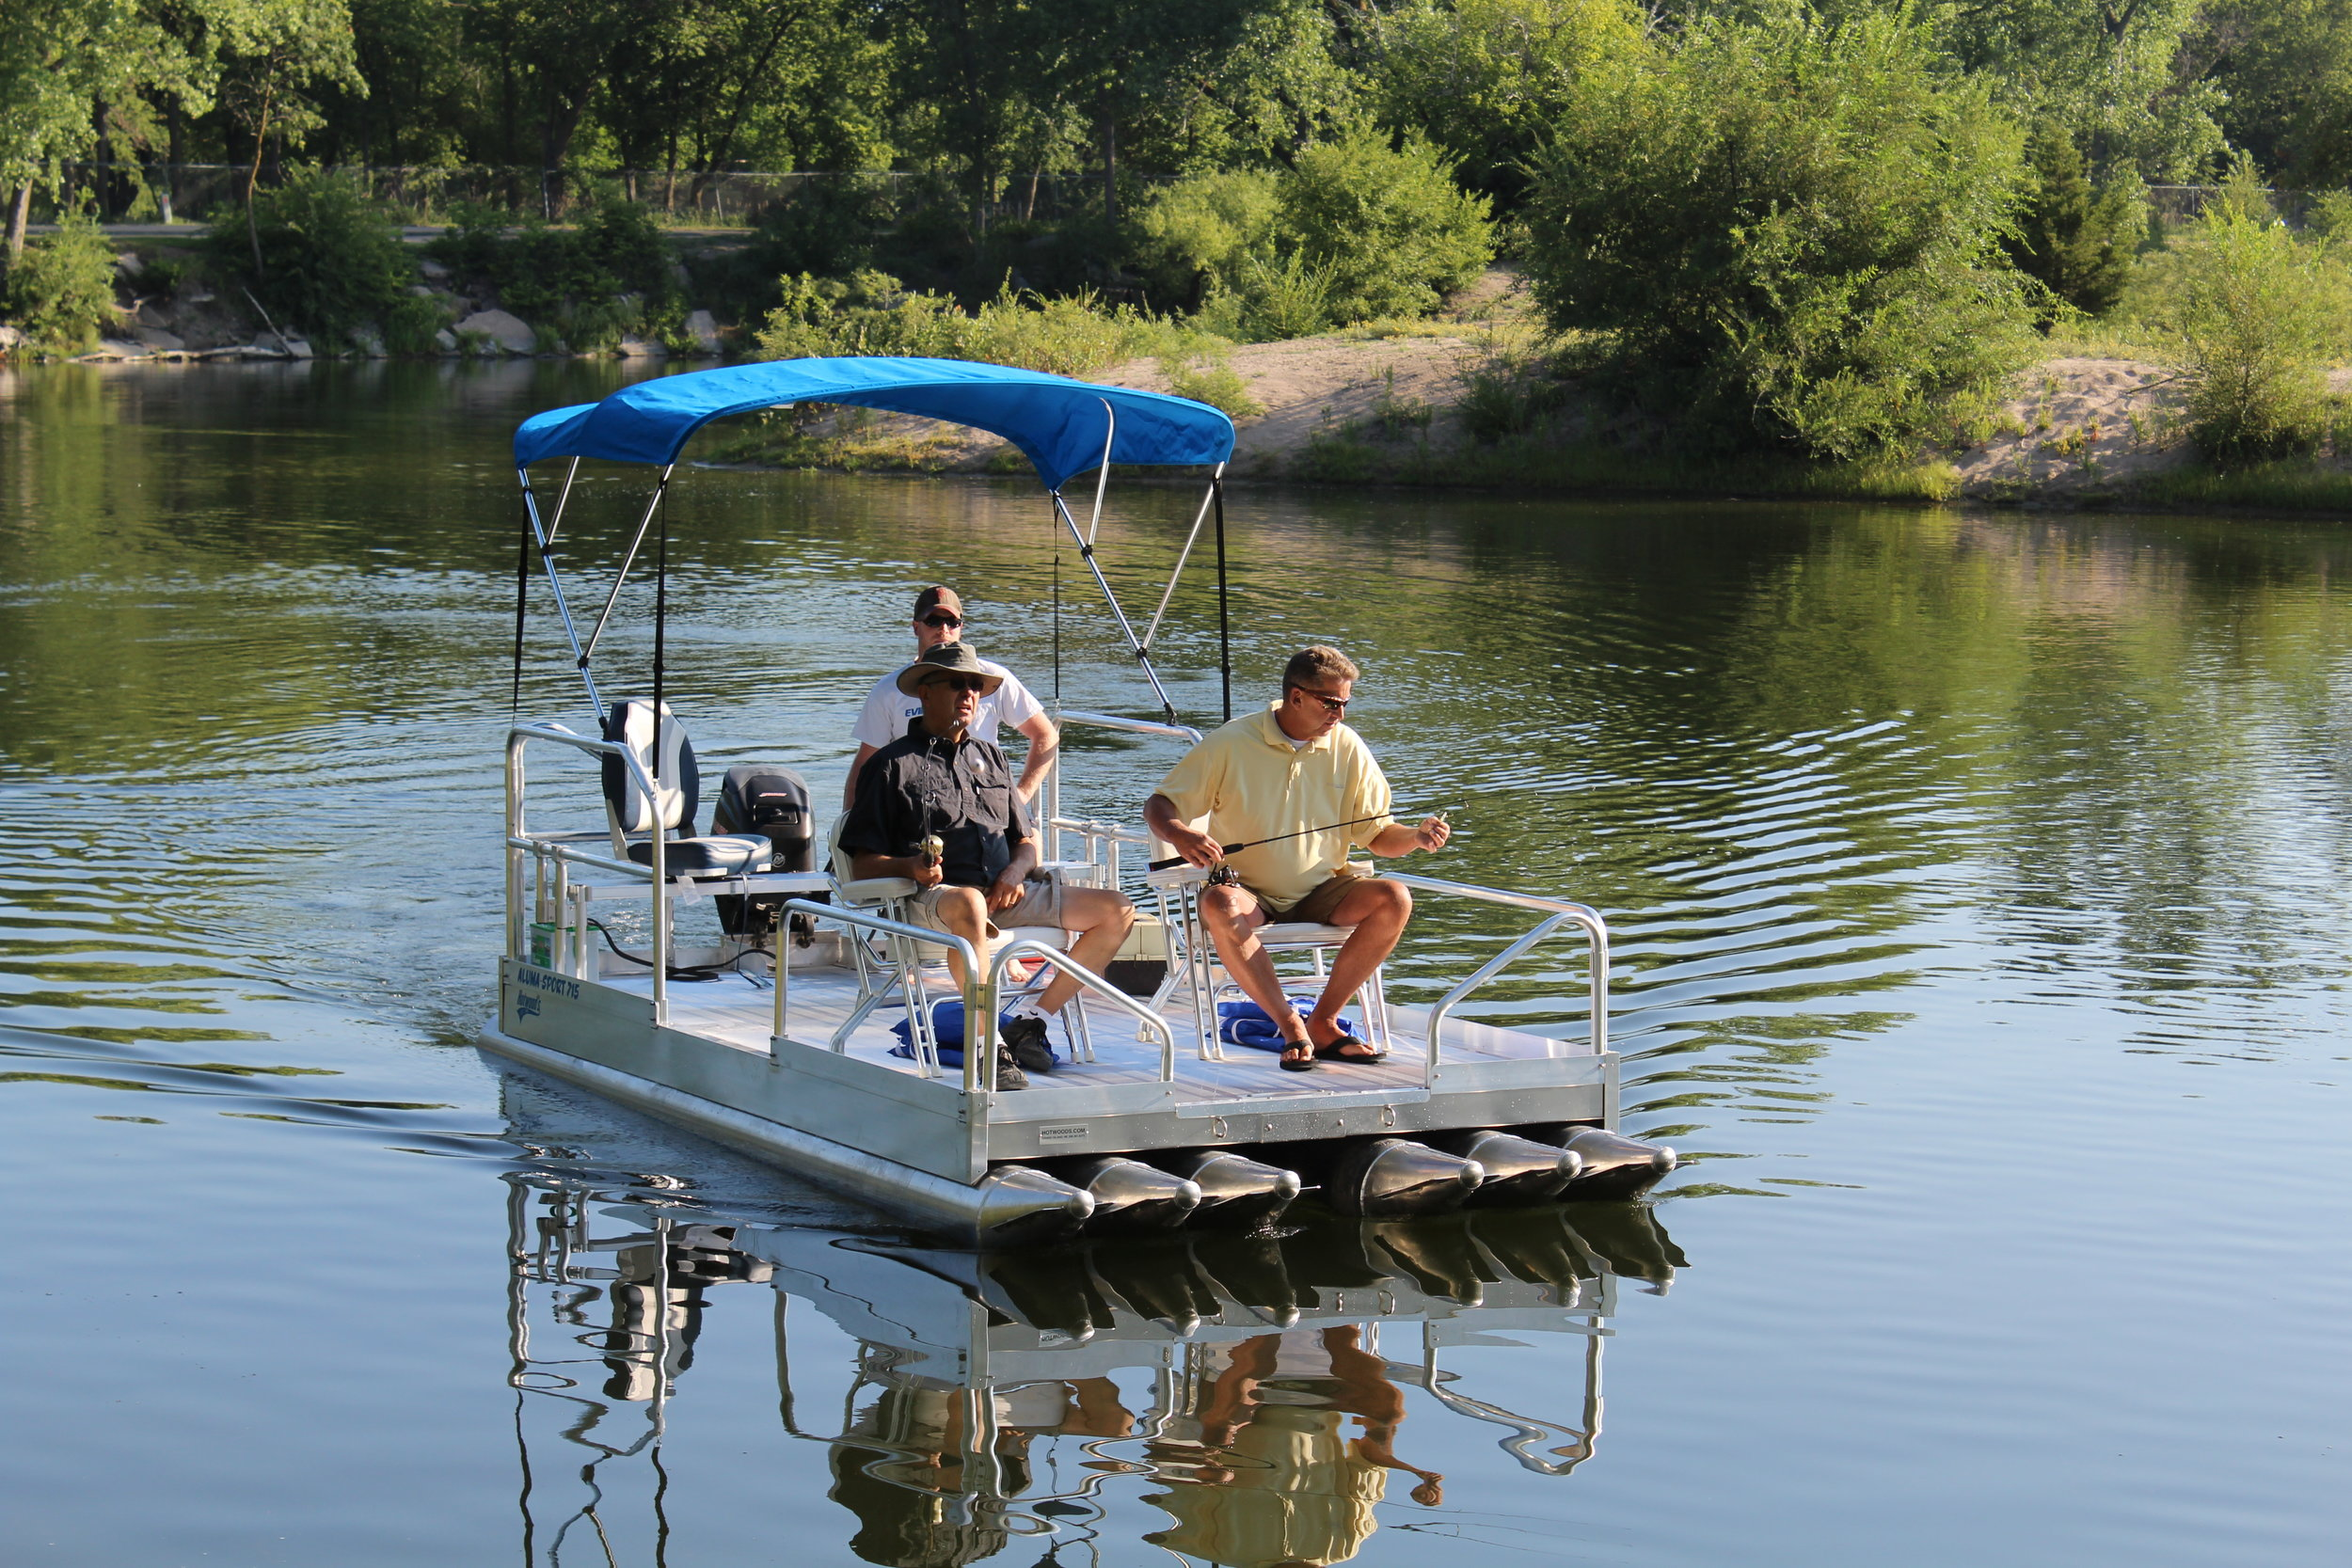 """Check out the 716 Aluma Sport pontoon boat we introduced for the first time in early 2018. With 1,600 lbs. of capacity and a 25 hp rating, you will have the ability to carry more weight and move across the lake at faster speeds to get to those favorite fishing holes or locations across the water. ( Boat above is shown with optional canopy top, seating and 25 hp. outboard motor.)    This 7' wide x 16' long all aluminum pontoon boat is packed with ( 6 ) 12"""" floats that by far give it the most stable platform in the industry for a boat this size. Pontoons are .090 thick aluminum, with .100 thickness on cones and end caps.( That is the heaviest in the industry ) The 716 Aluma Sport weighs 875 lbs, with the trailer weighing 620 lbs. for a combined pulling weight of 1,495 lbs. That makes it very easy to pull with the lightest pickup or like vehicle on the road.    We are personally involved with every boat we have ever designed or manufactured, and after 2 years in development, we can say, this boat is incredible when it comes to maneuverability and stability. We have just never seen anything like it on the water. This craft is literally like walking around on your patio.    Quality, you need not question the construction of this boat, like all our pontoon boats and docks we manufacture, there is nothing to compare them to. The 716 Aluma Sport is manufactured completely of aluminum with stainless steel hardware. We tell people everyday they could bury this boat, dig it up 20 years later and go boating.    NOTE:    We get asked regularly if that aluminum floor is going to get hot and be uncomfortable to walk on with bare feet. Aluminum is 11 degrees cooler than wood in the same sun light, as it reflects the heat instead of absorbing it. Also, after you have owned this craft a few months that floor will patina, taking that shine out of the aluminum making it absolutely as cool as anything out there to walk on."""